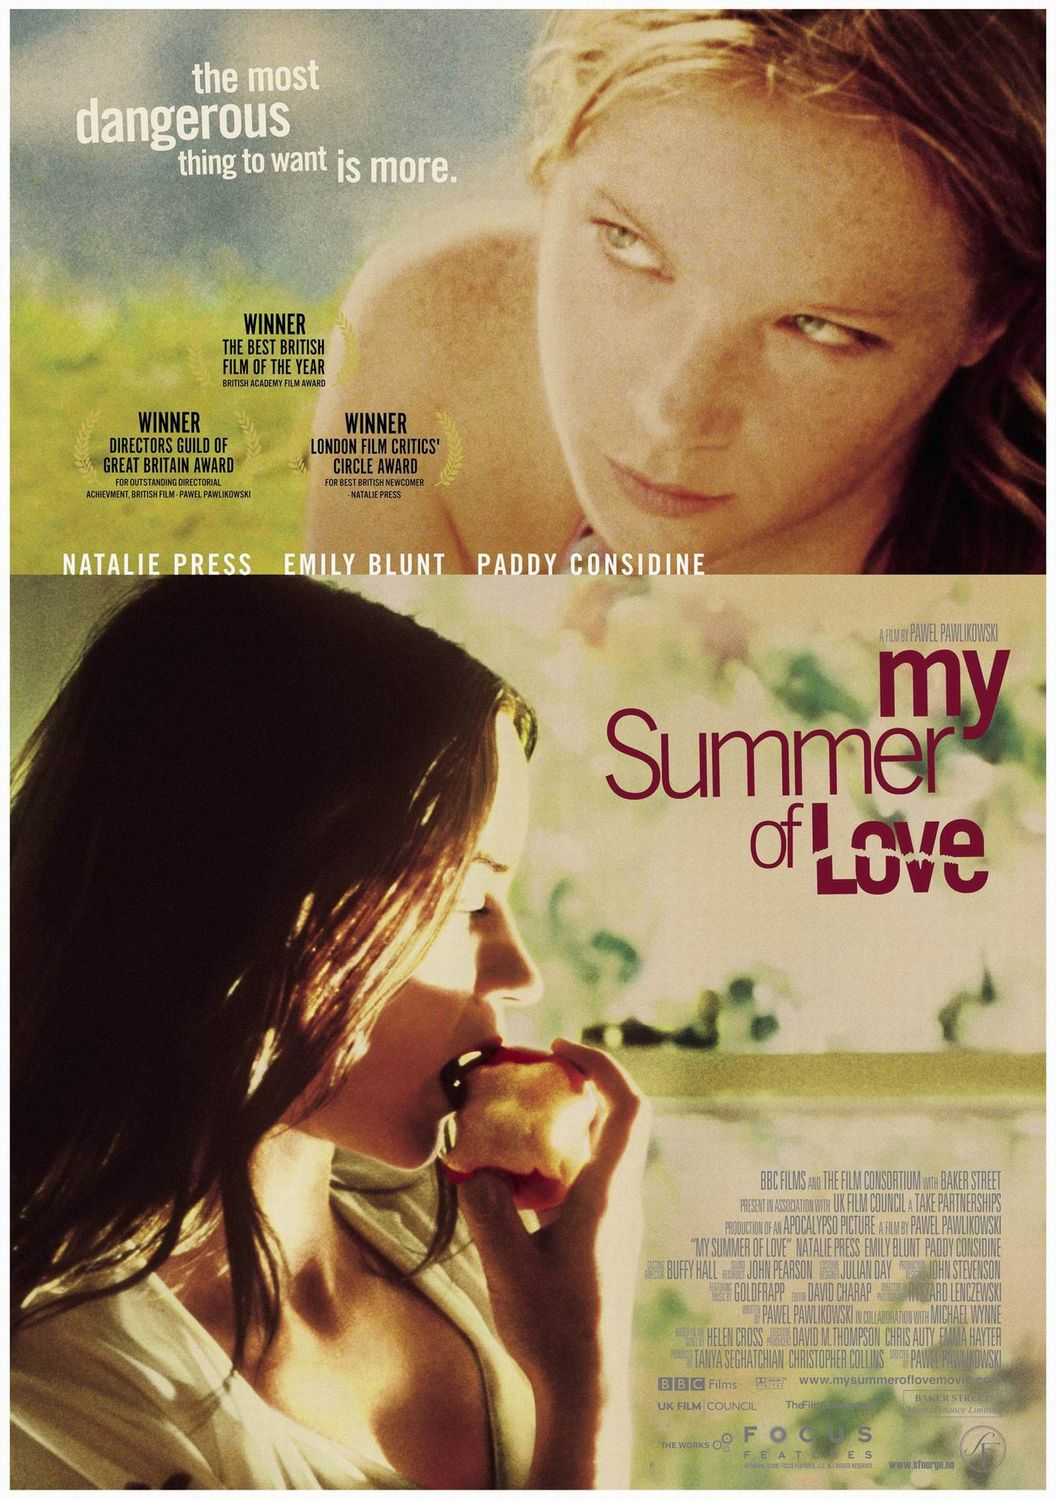 My Summer of Love - (2004) - Review Propio